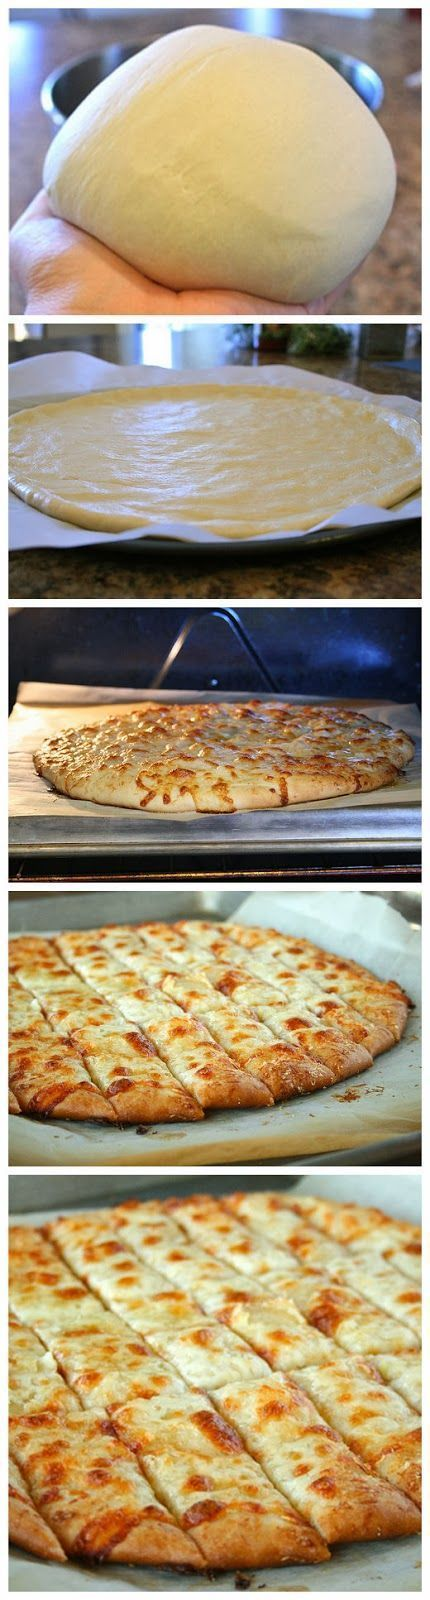 Fail-Proof Pizza Dough and Cheesy Garlic Bread Sticks - Best Healthy Italian Recipes for Dinner